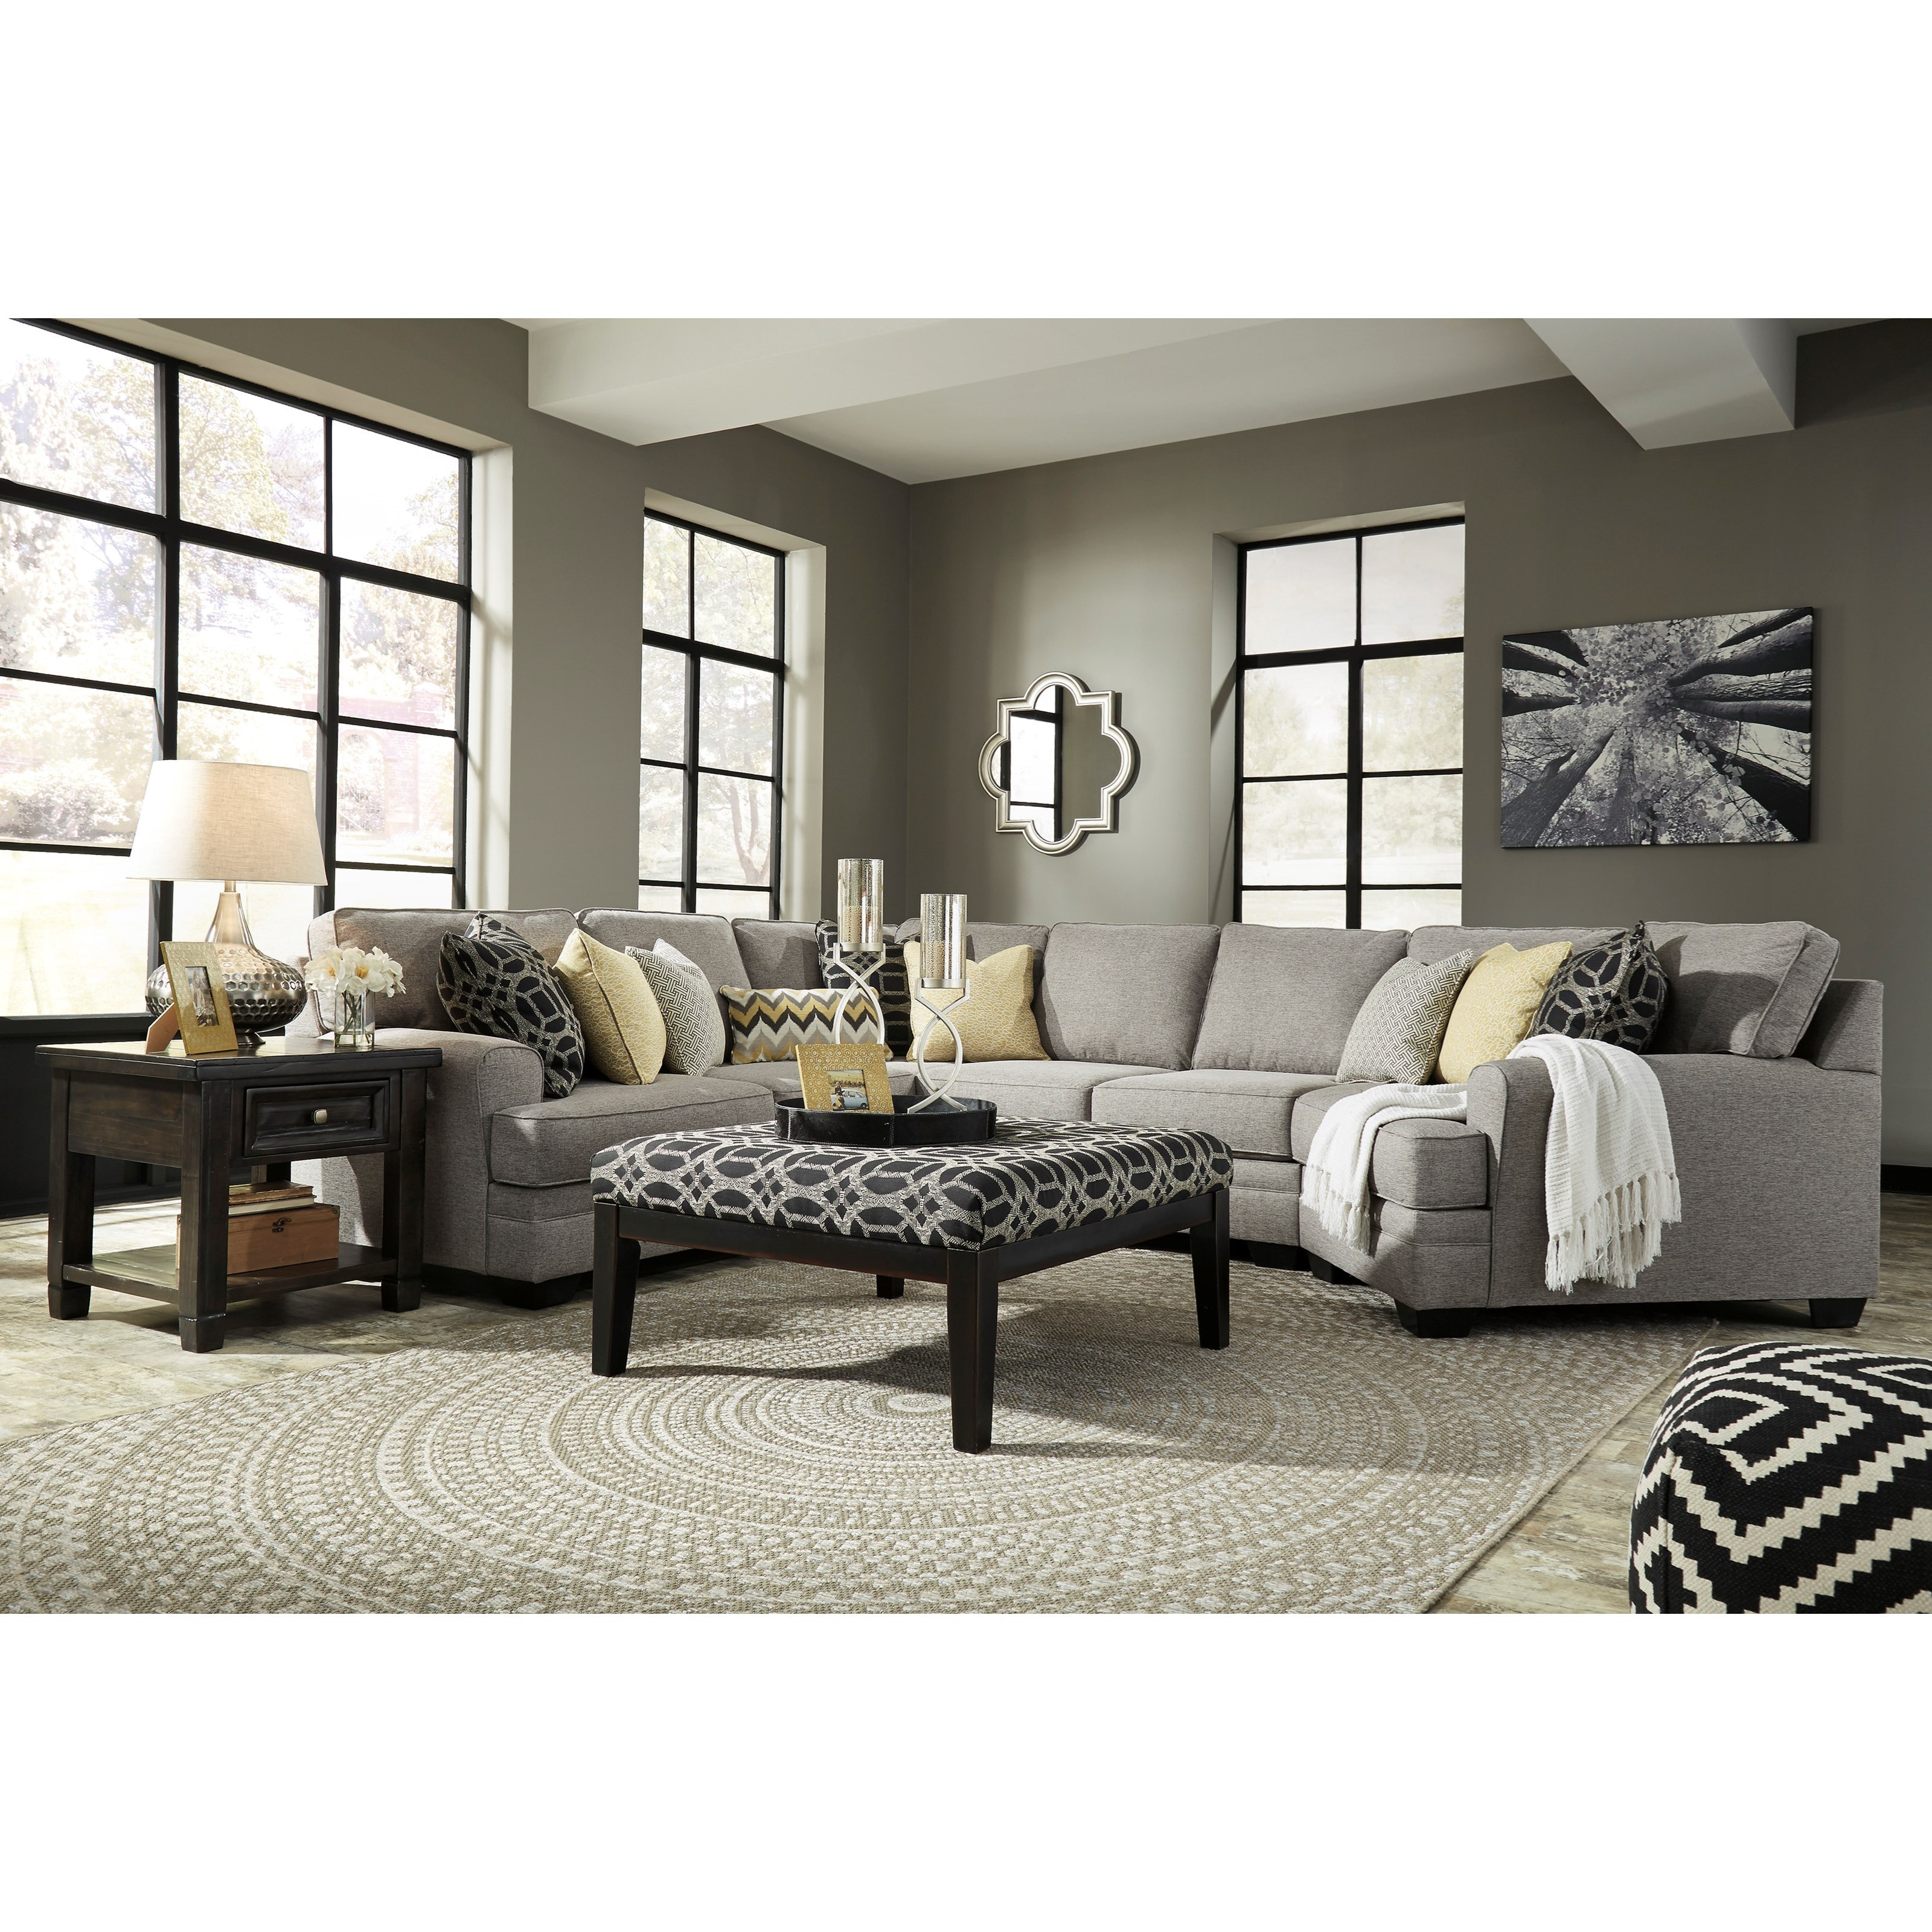 Benchcraft Cresson Stationary Living Room Group - Item Number: 54907 Living Room Group 15